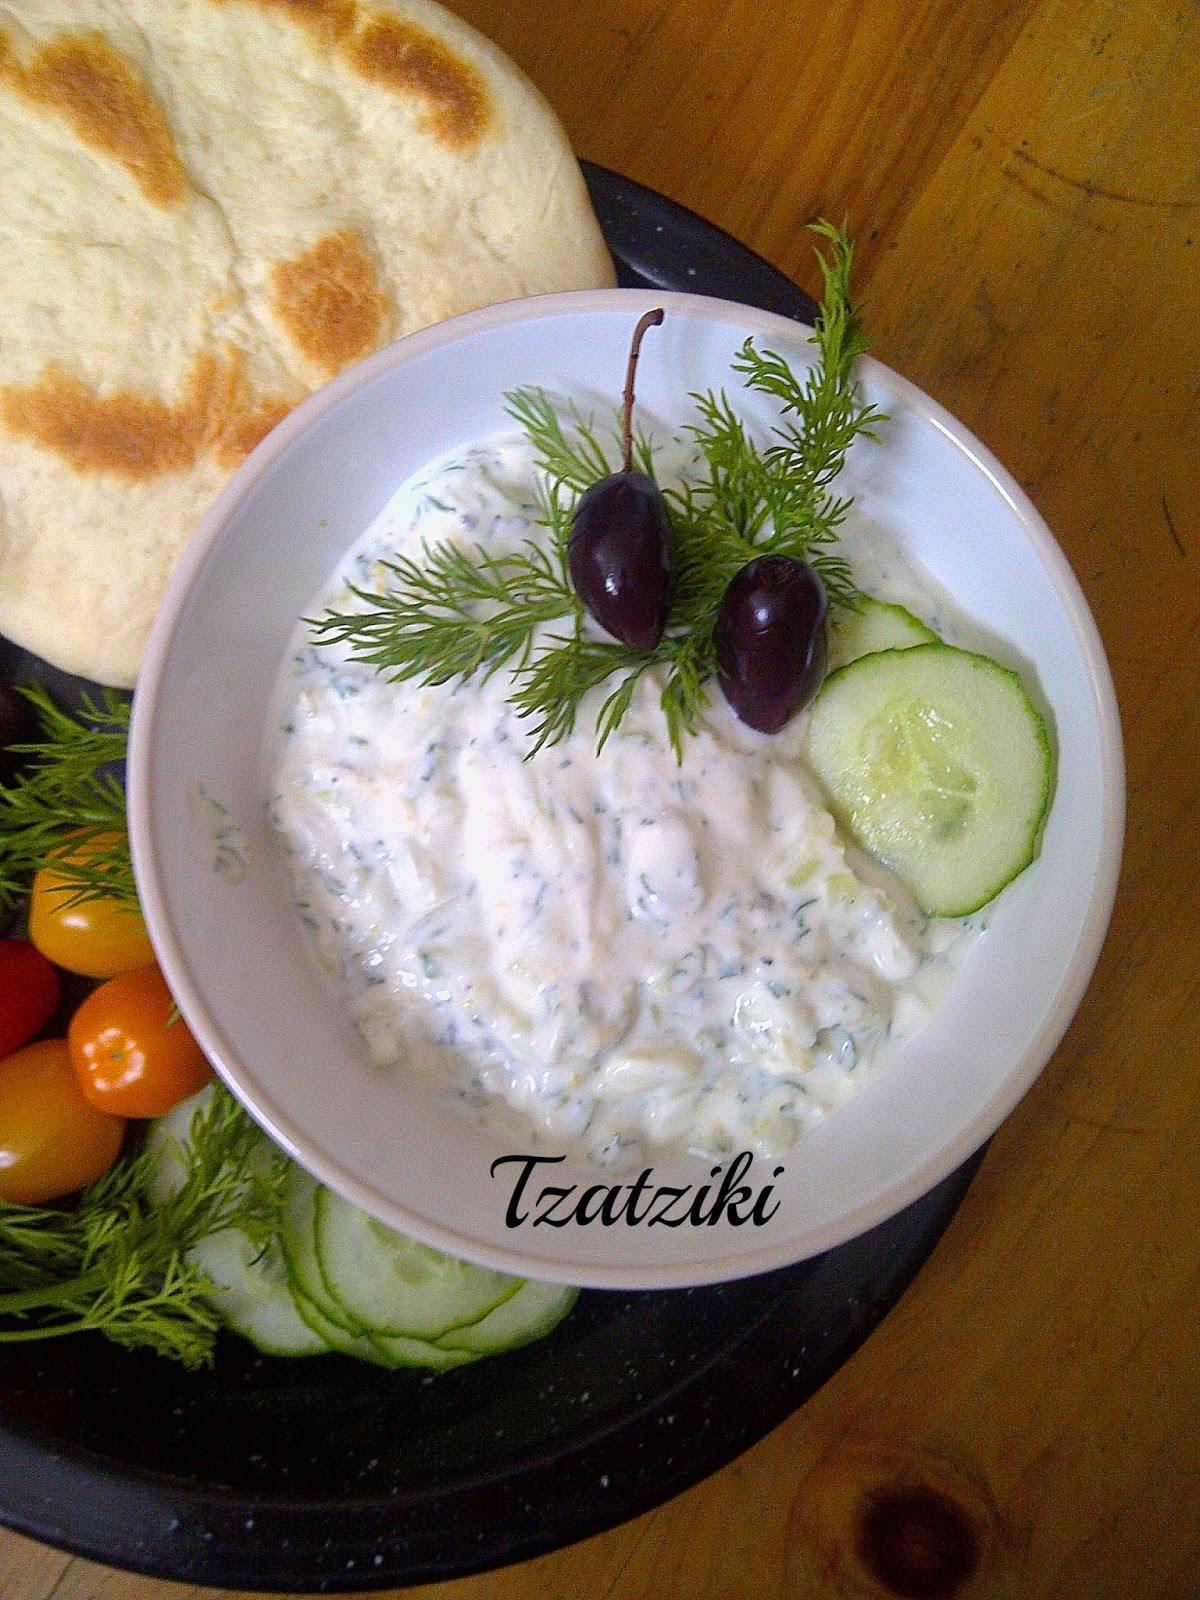 Tzatziki - Skip the pitas and dip the veggies!